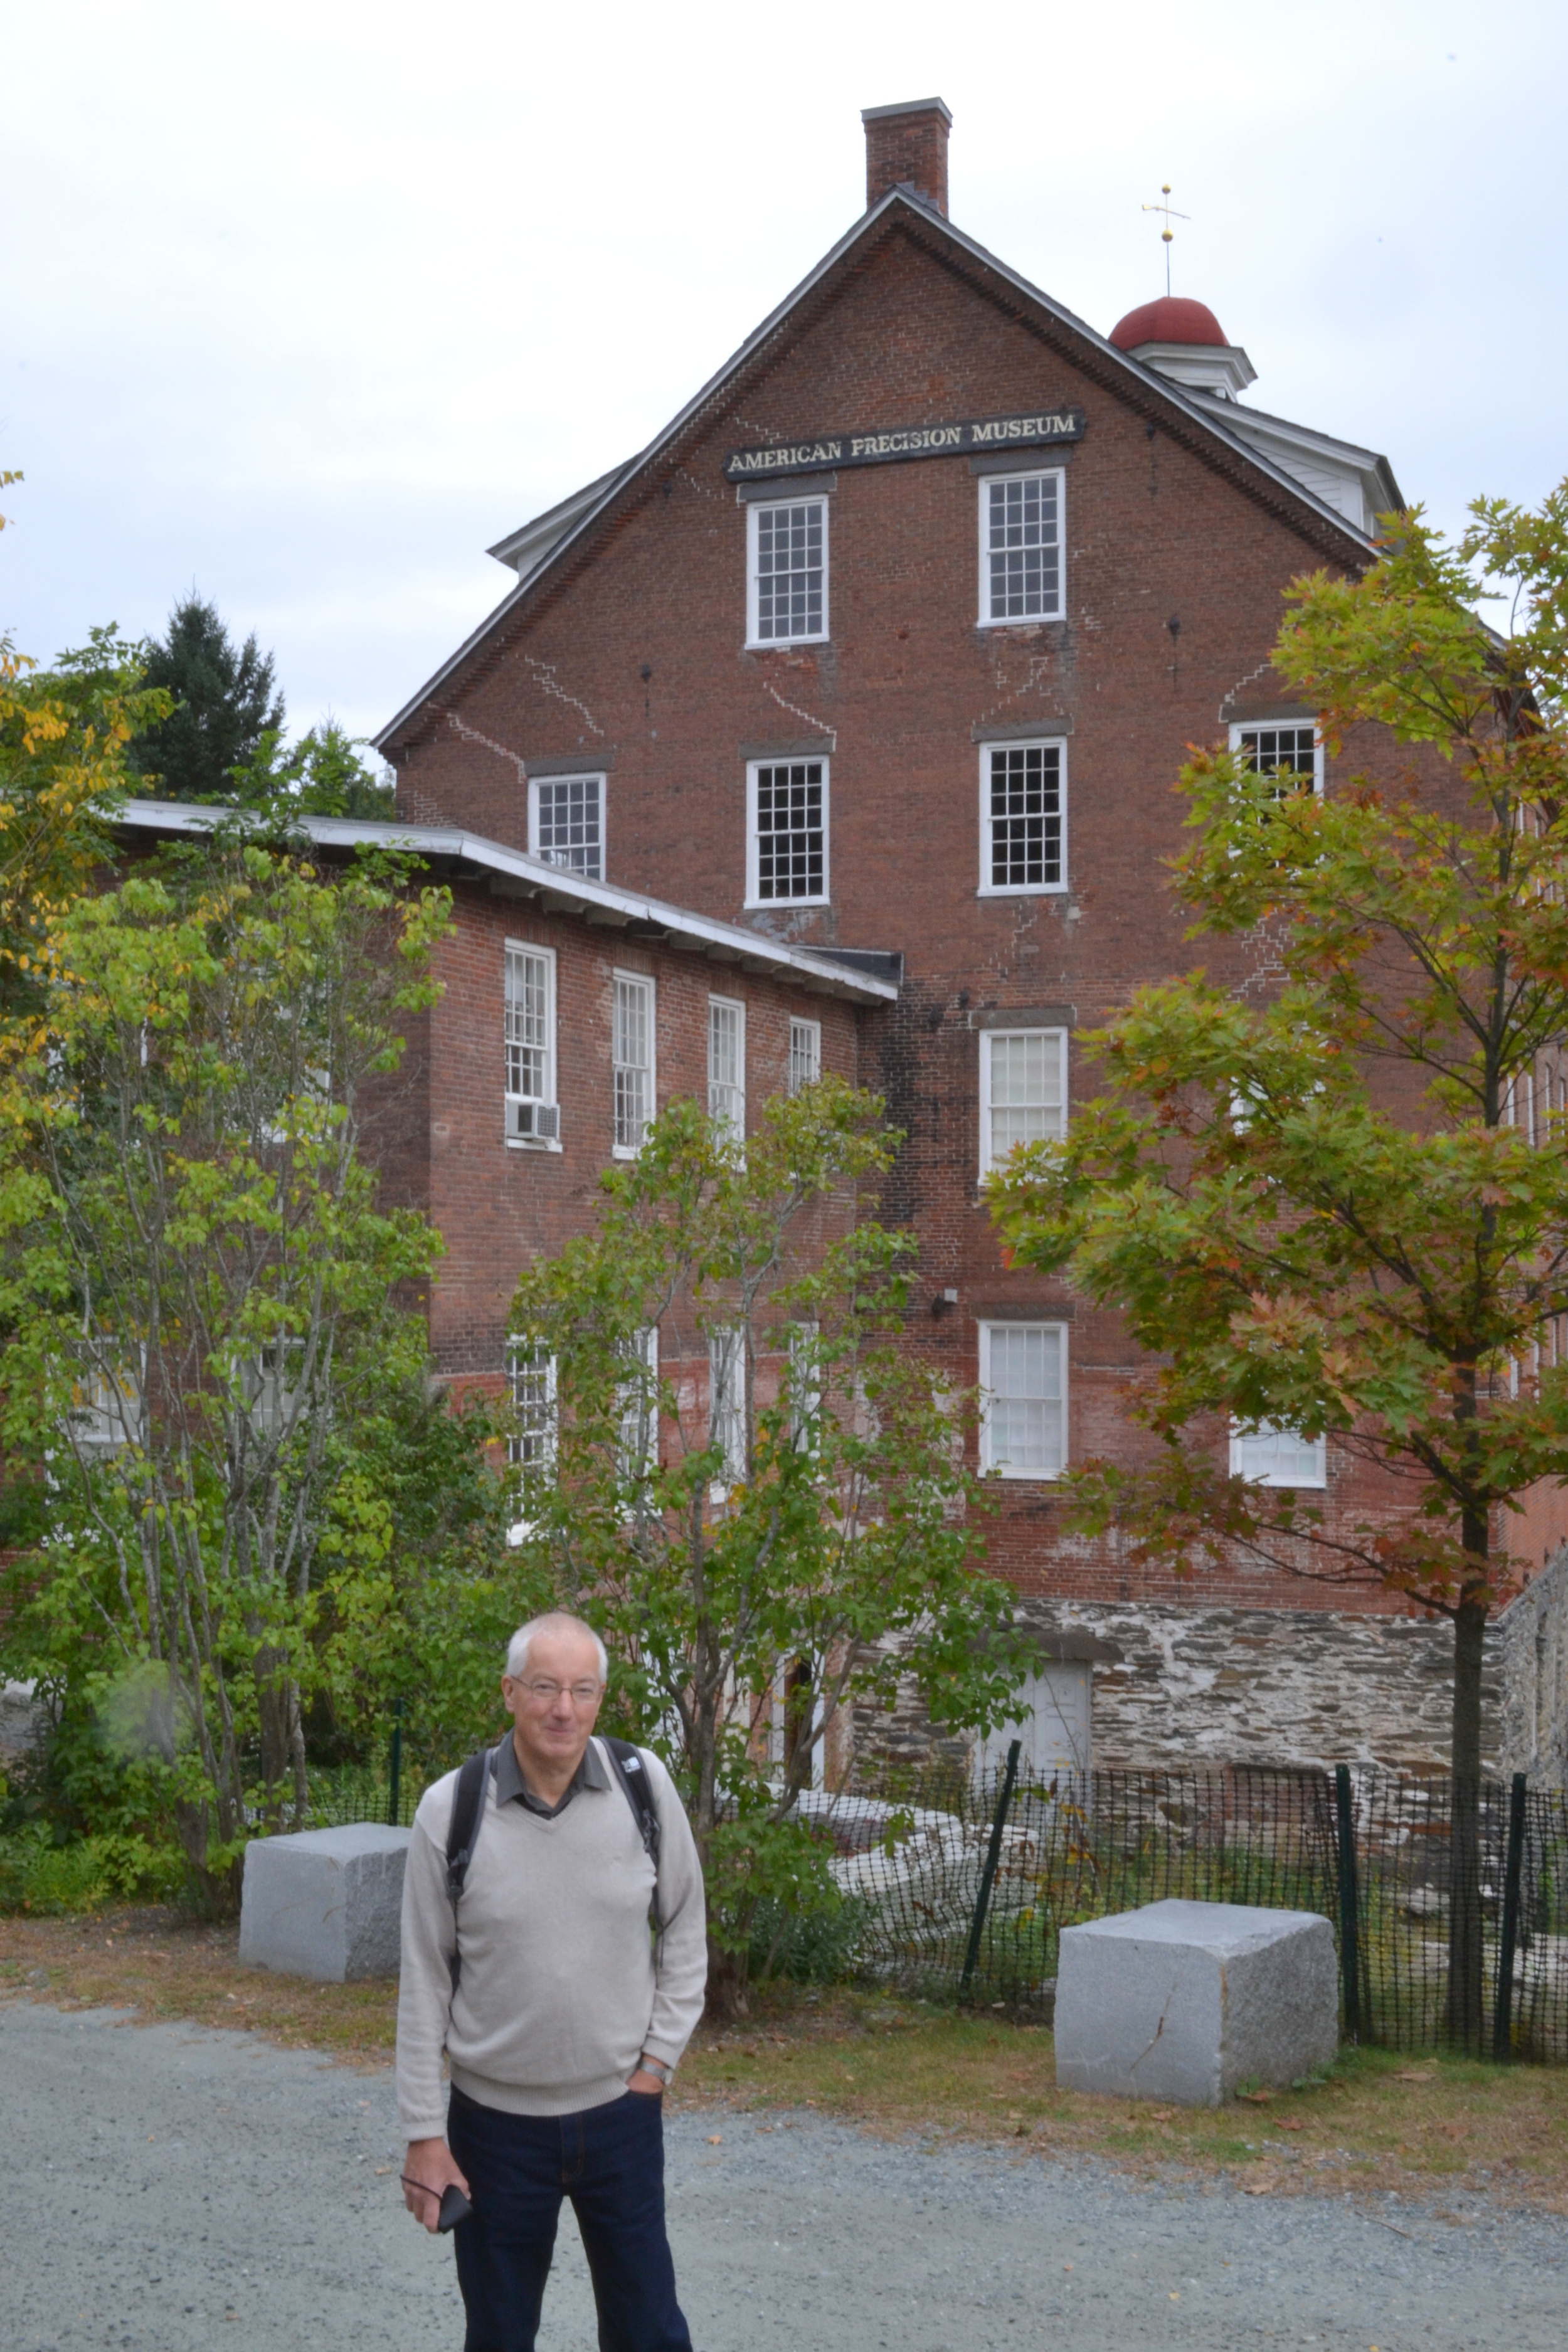 Mike Jones—Snapdragon guest & machine tool enthusiast—in front of the American Precision Museum in Windsor, VT.